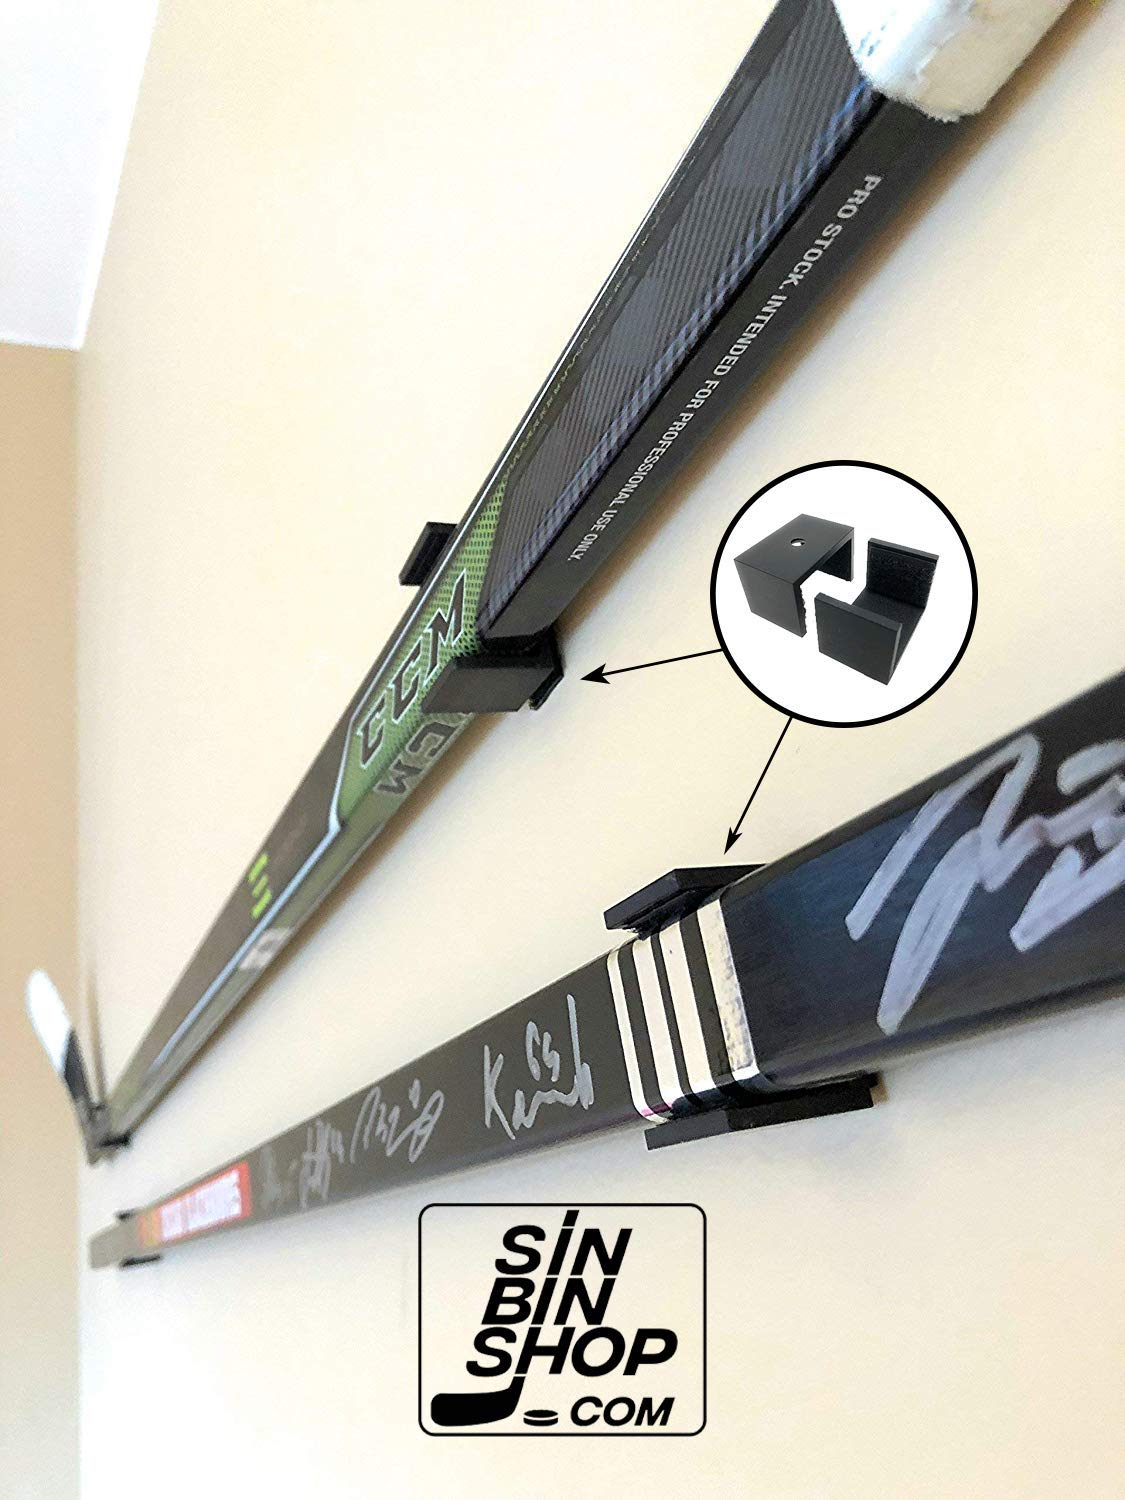 SinBinShop.com Hockey Stick Display Holder/Hanger Wall Mounts